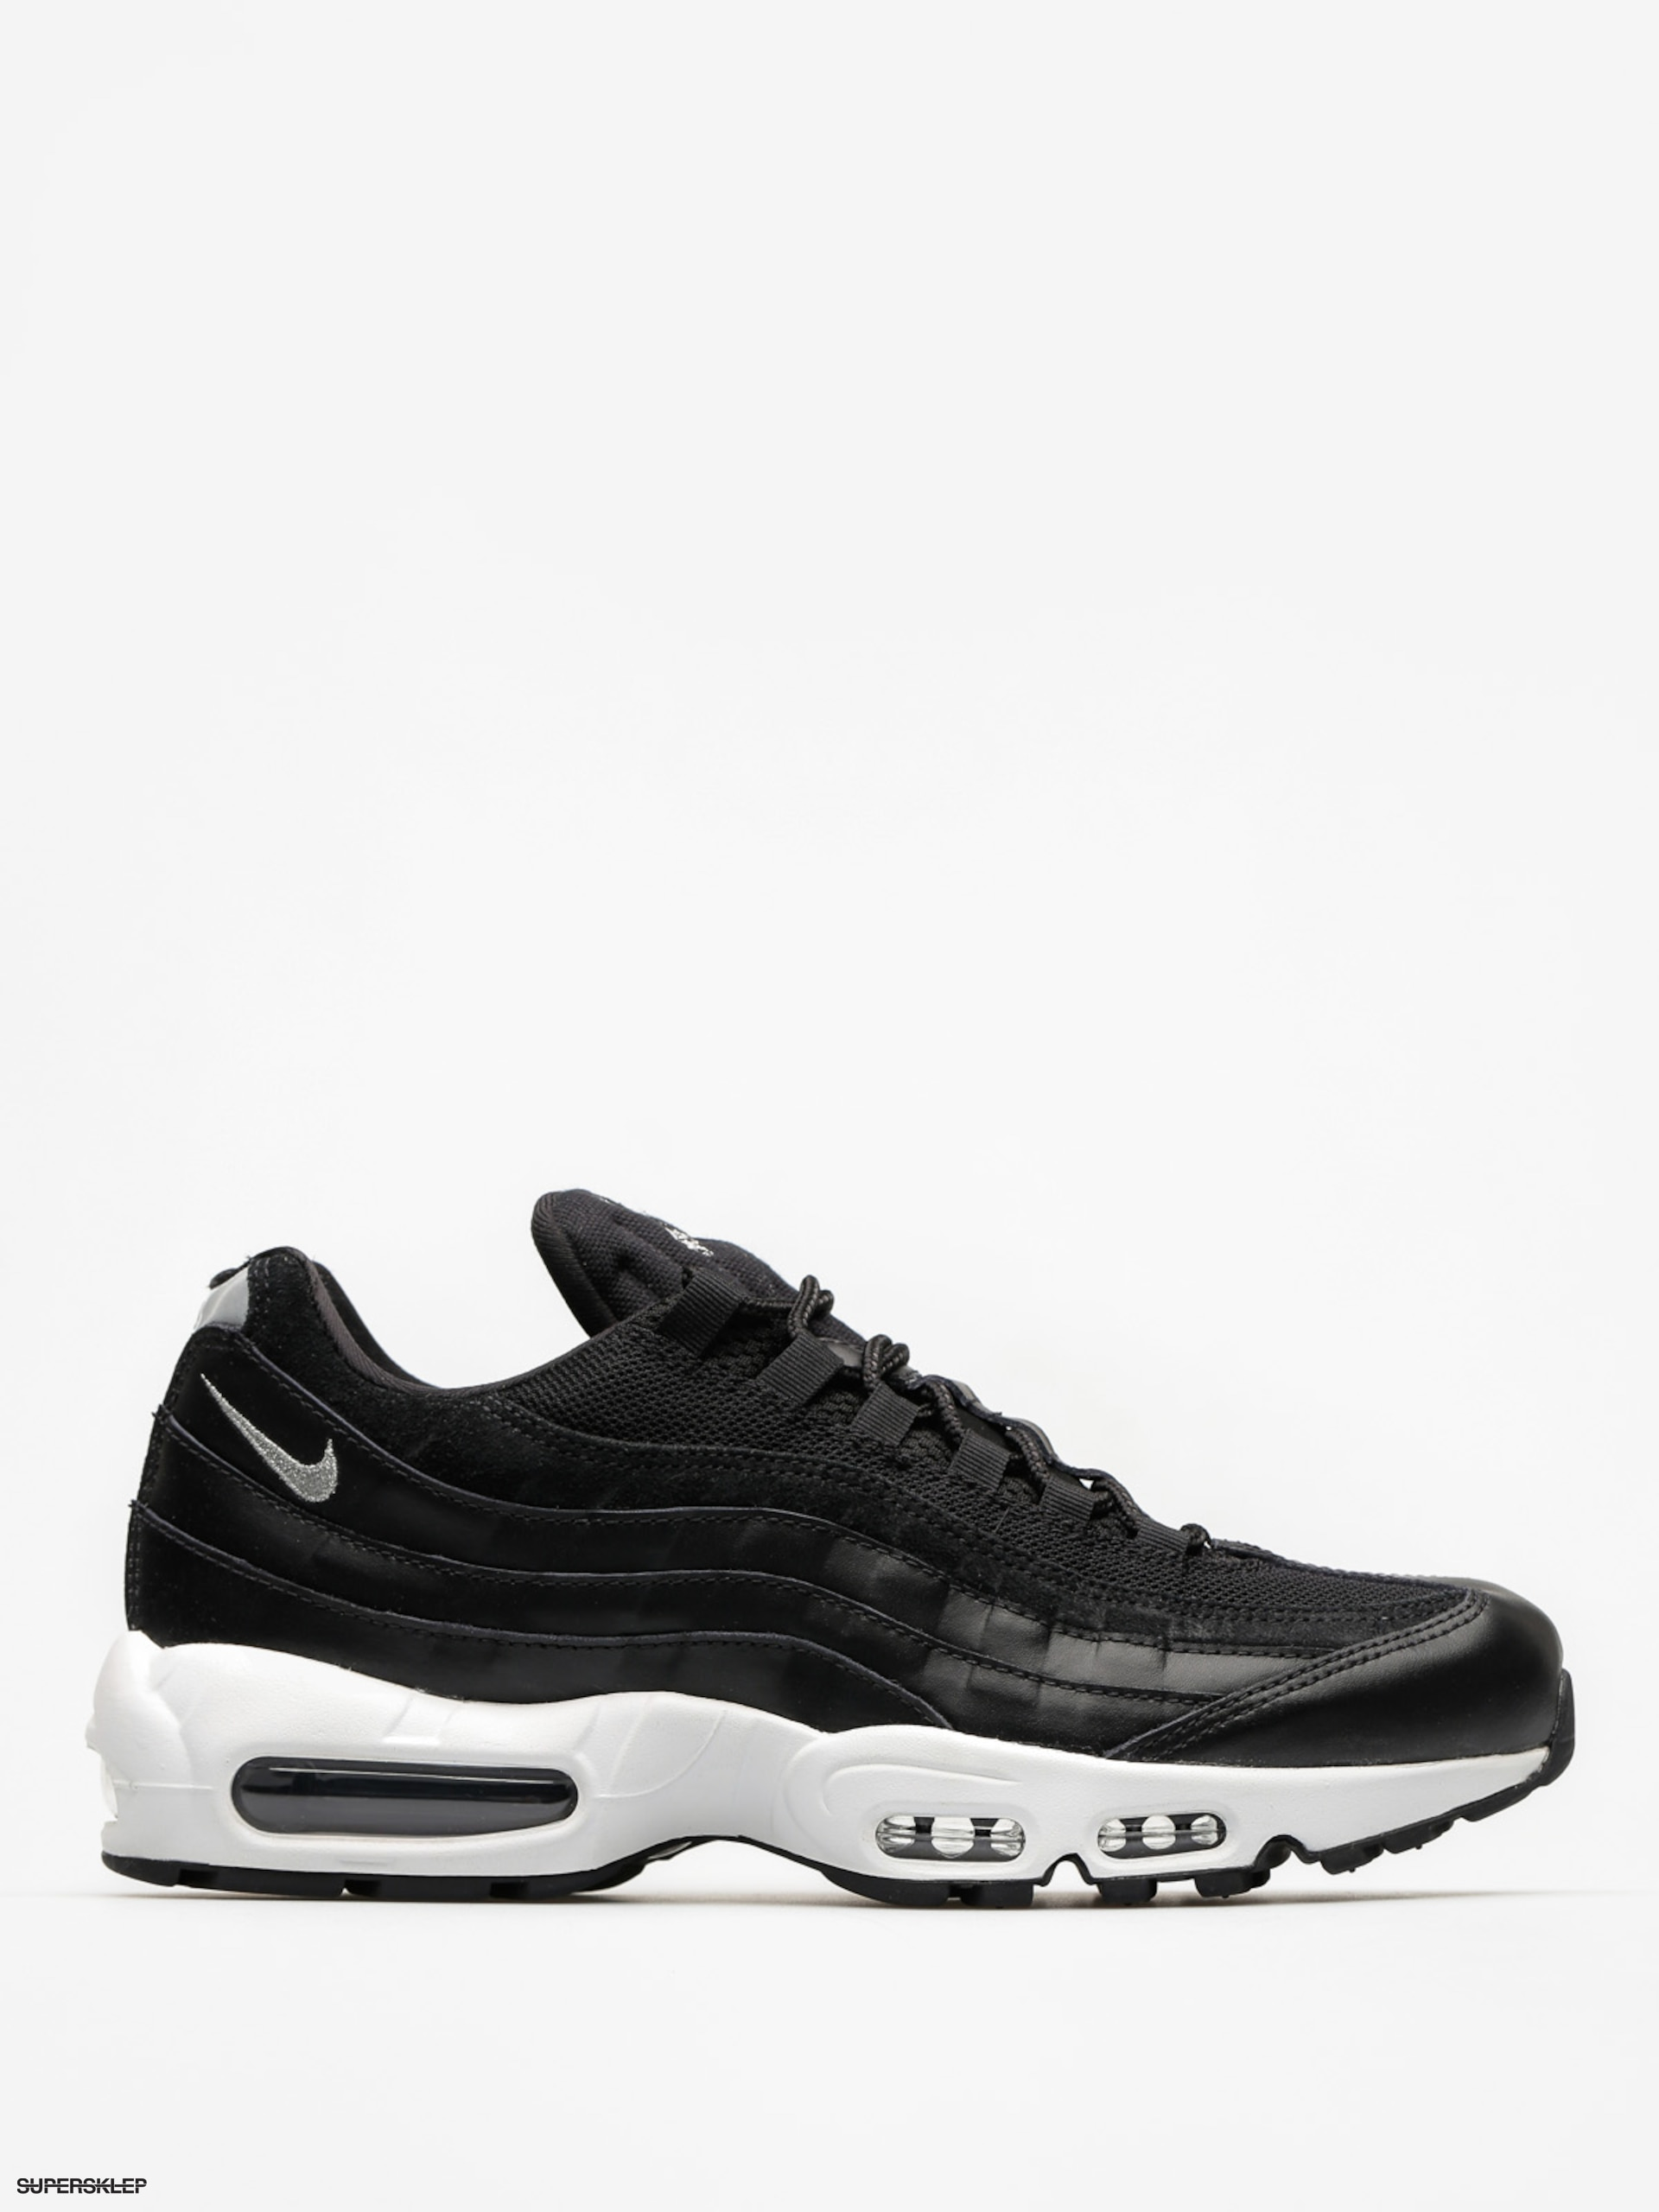 Boty Nike Air Max 95 Premium (black/chrome black off white)